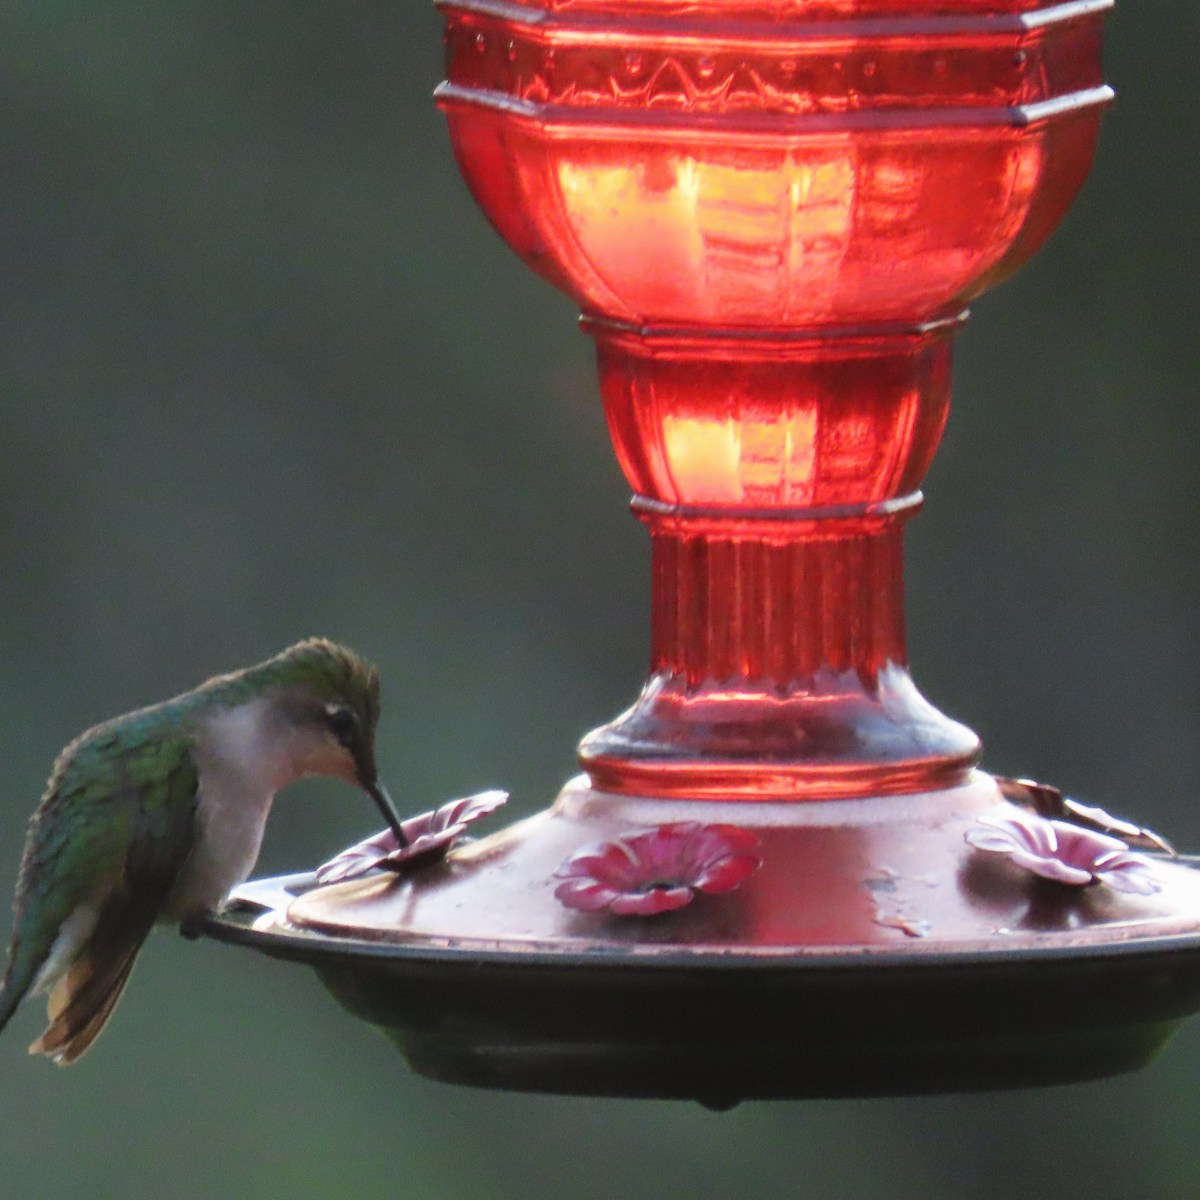 A Ruby-throated Hummingbird drinks from a red glass nectar feeder